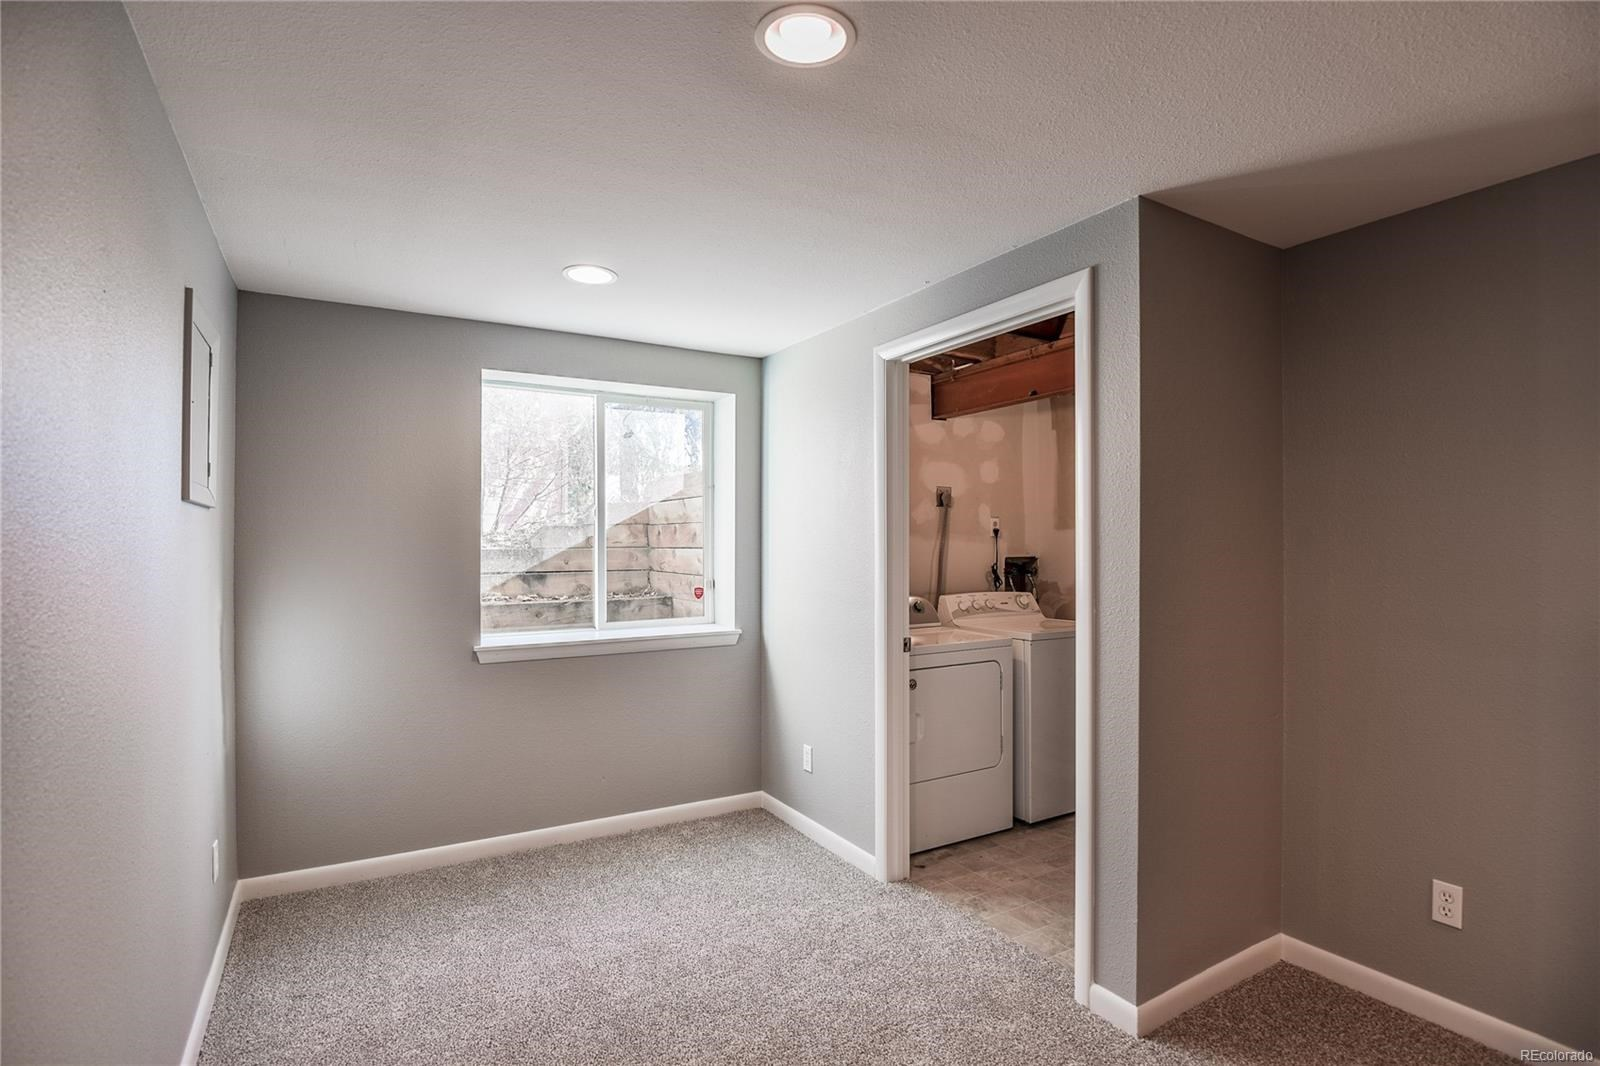 MLS# 8183776 - 16 - 2547 W 104th Circle, Westminster, CO 80234